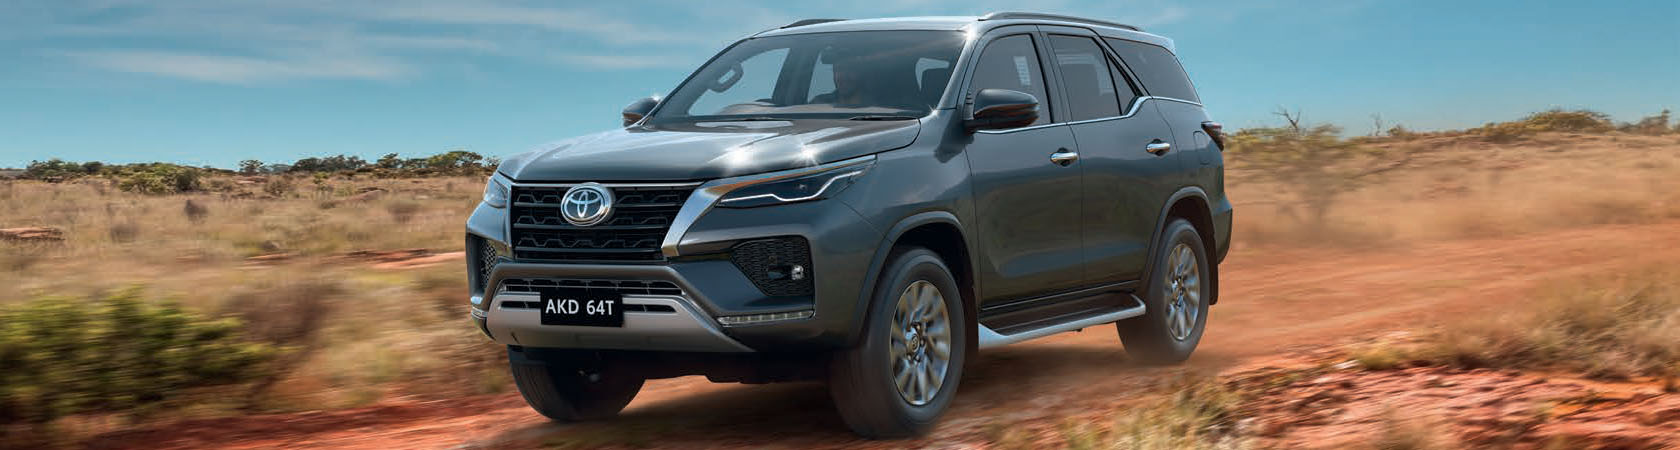 Turnbull Toyota Fortuner